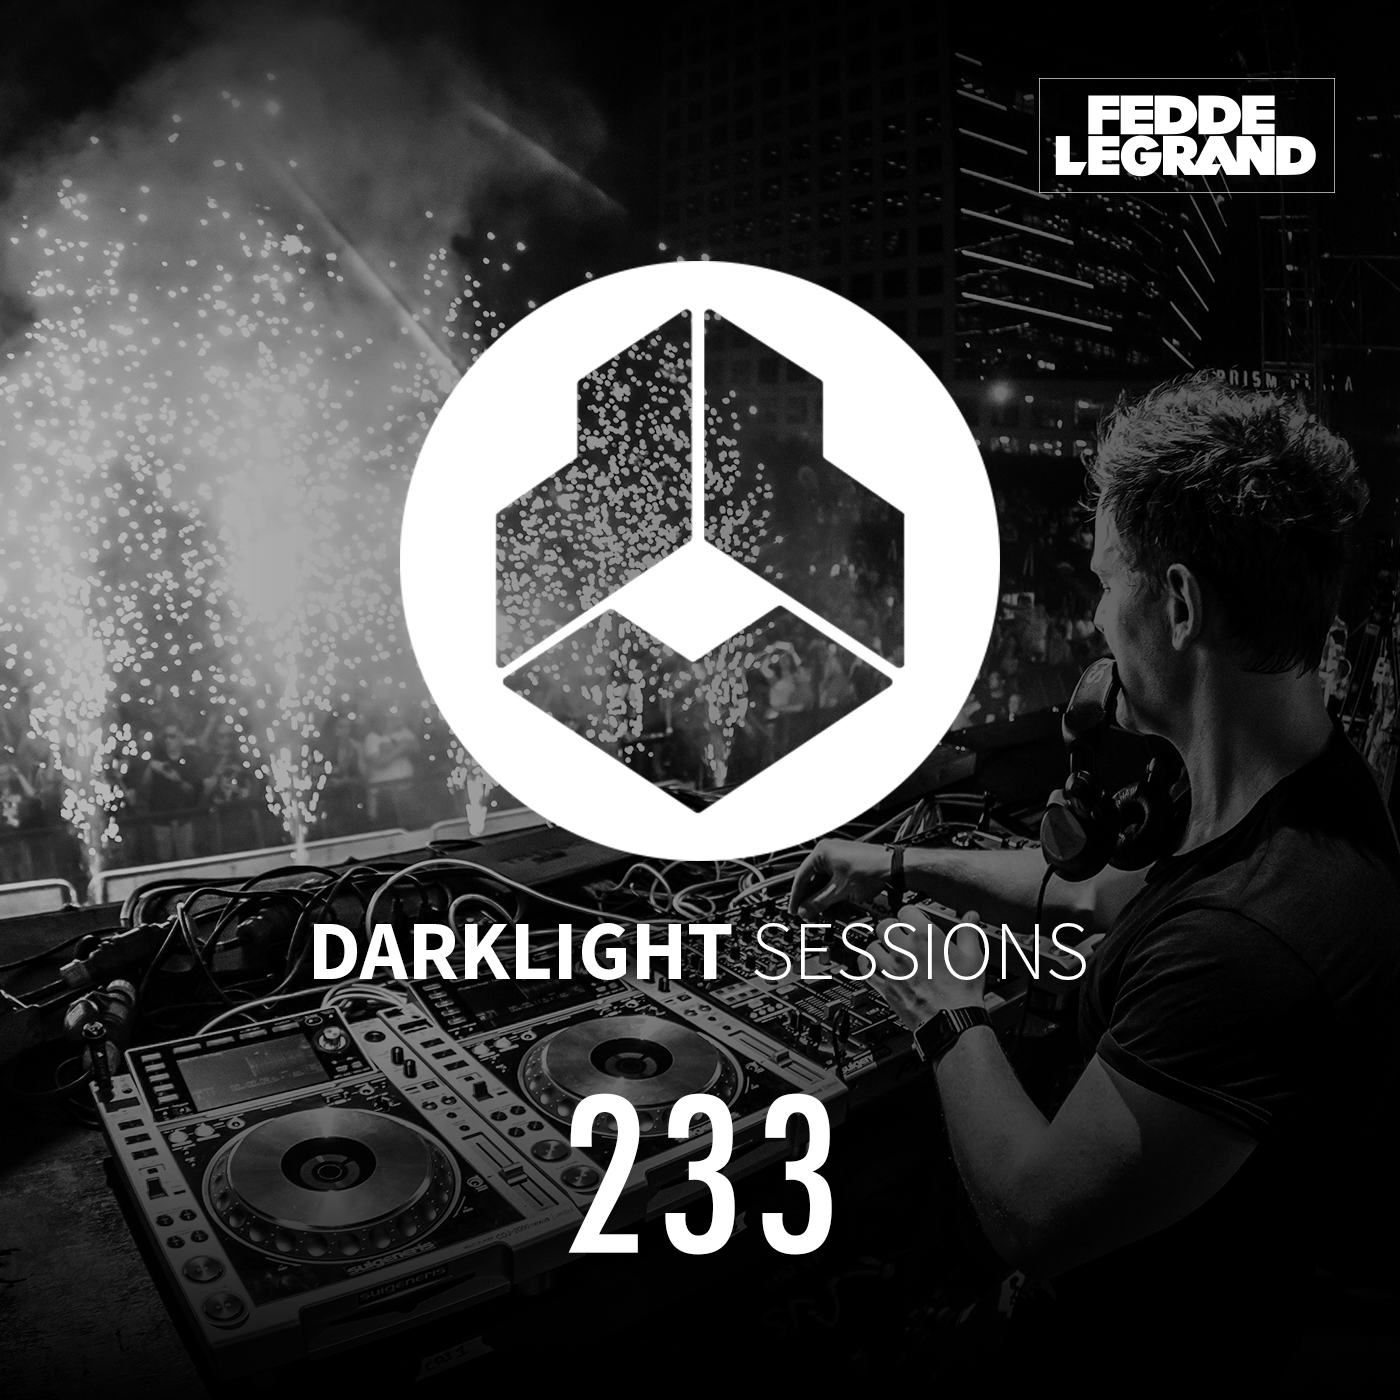 Darklight Sessions 233